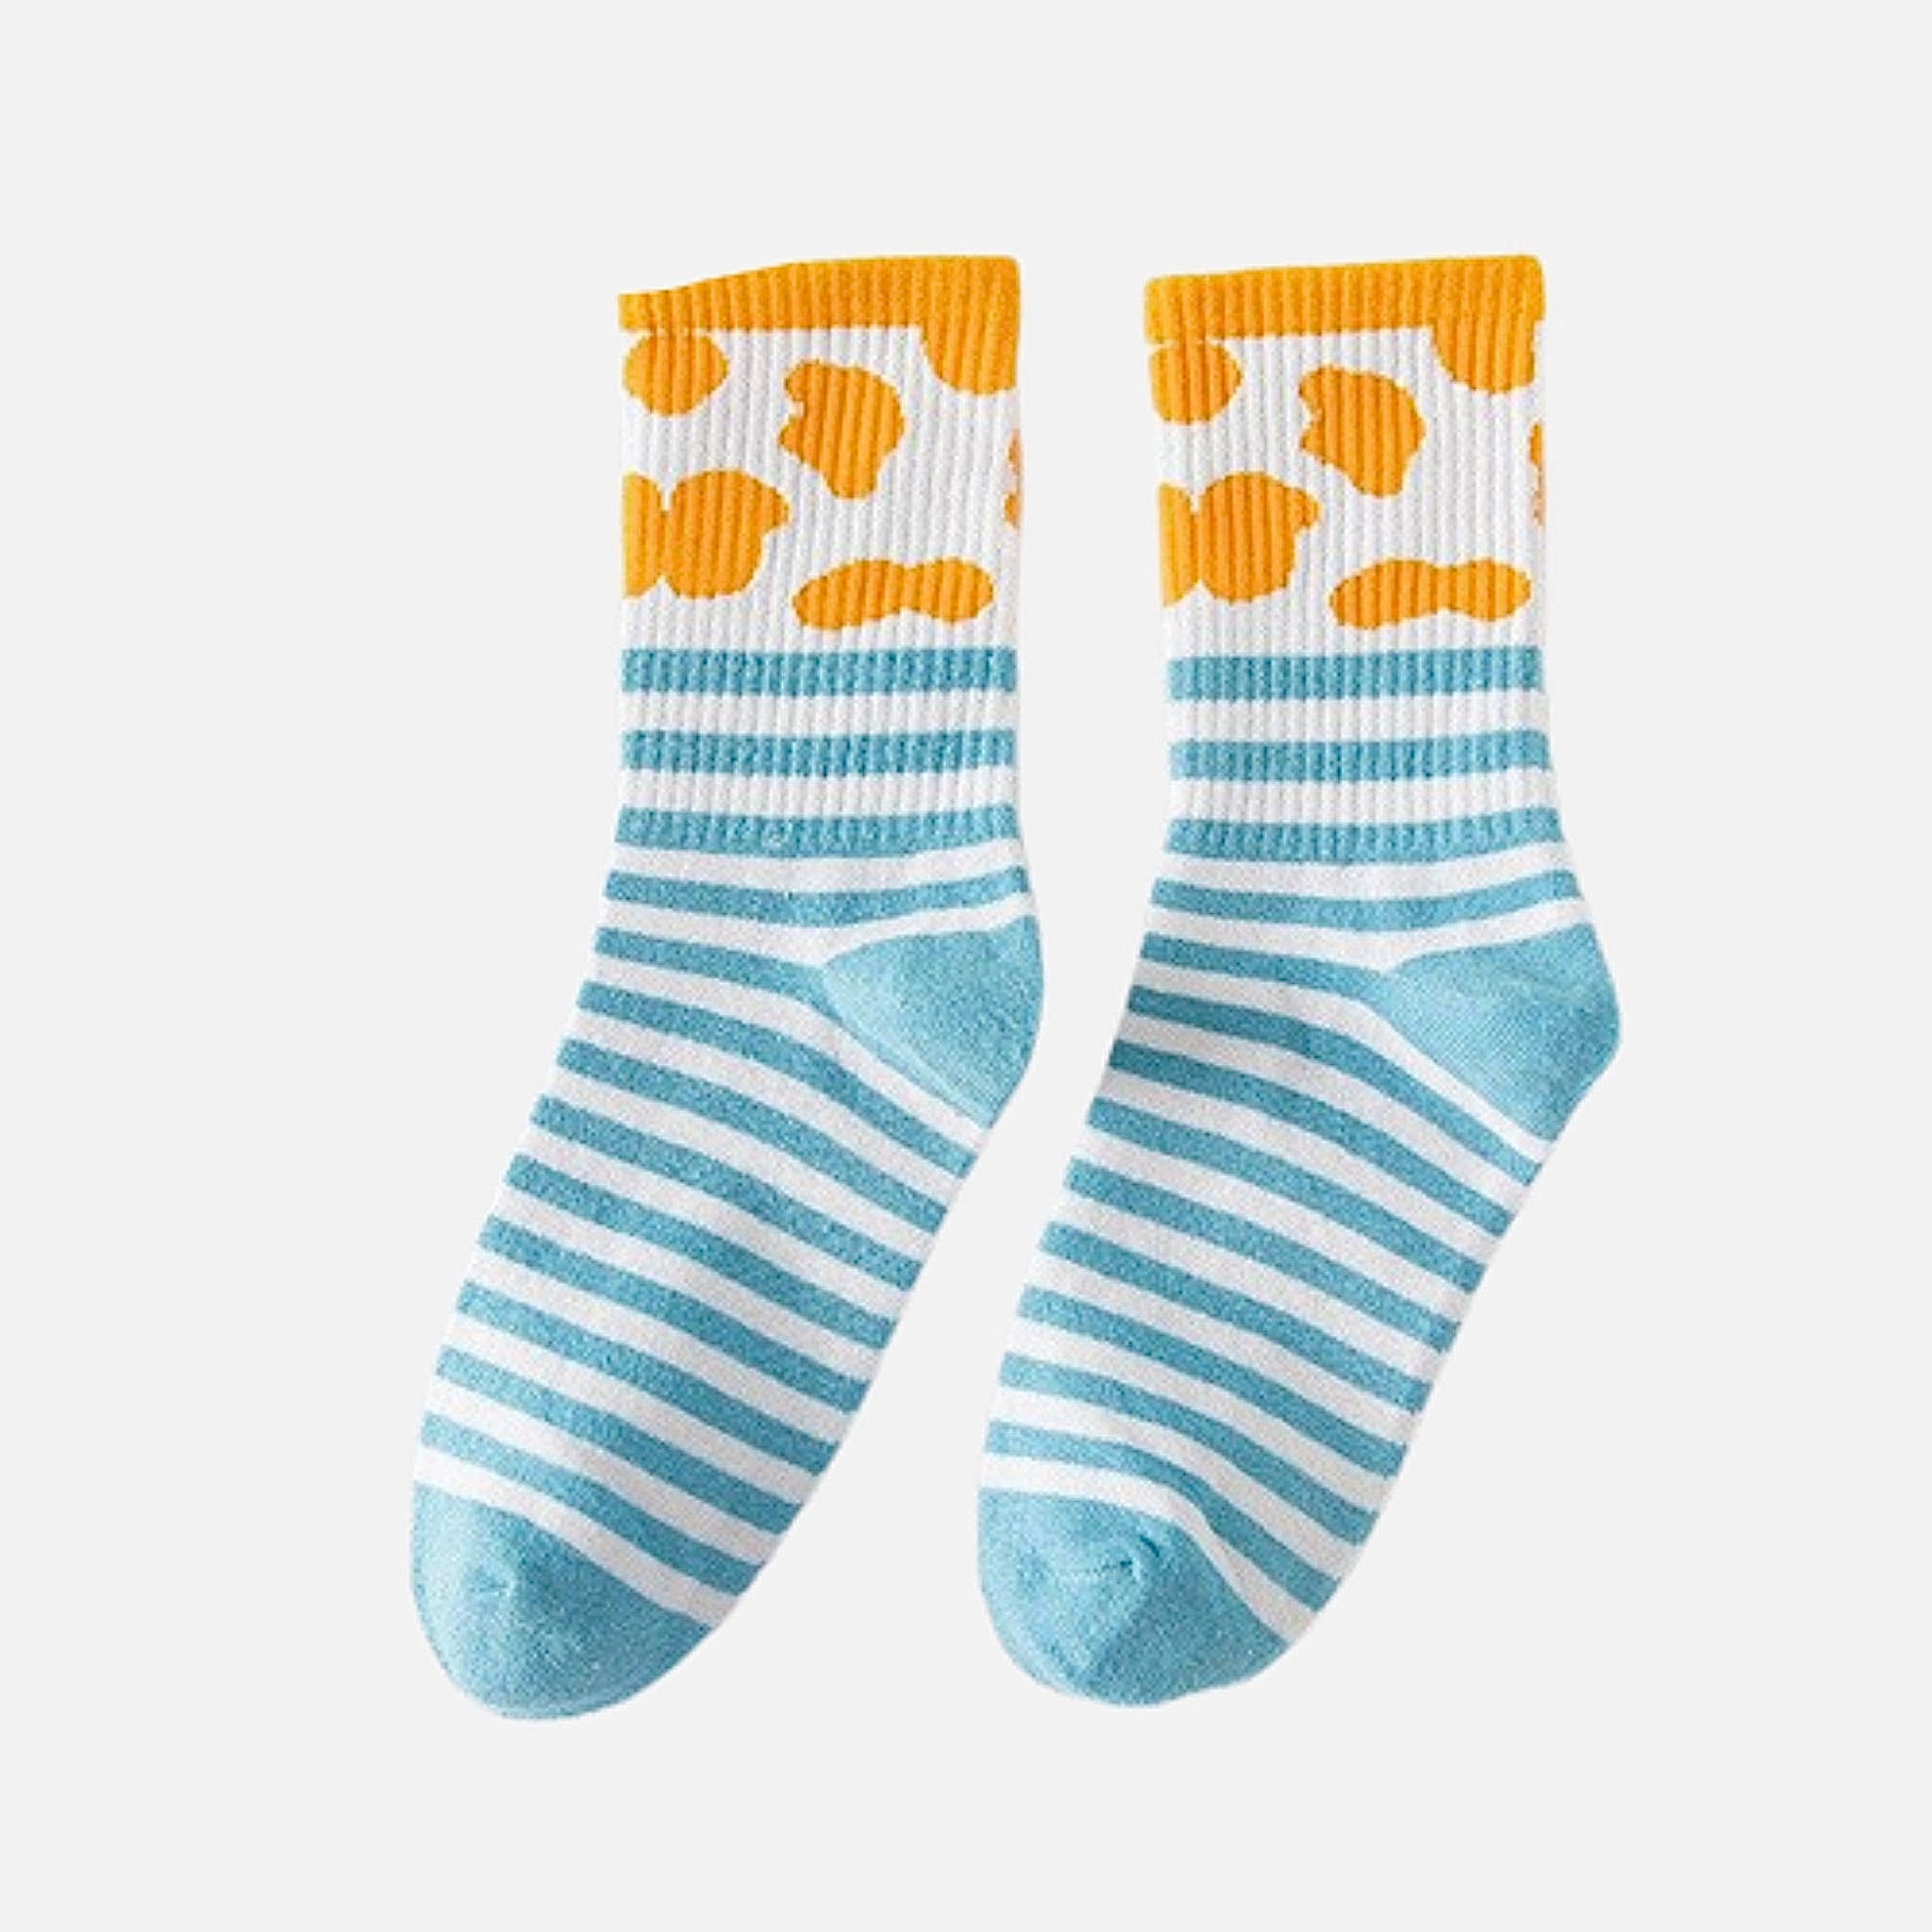 Rib Crew Socks      Cute Ribbed Cotton Light Blue Stripe White Cow Pattern print Street Fashion Cotton Socks footwear